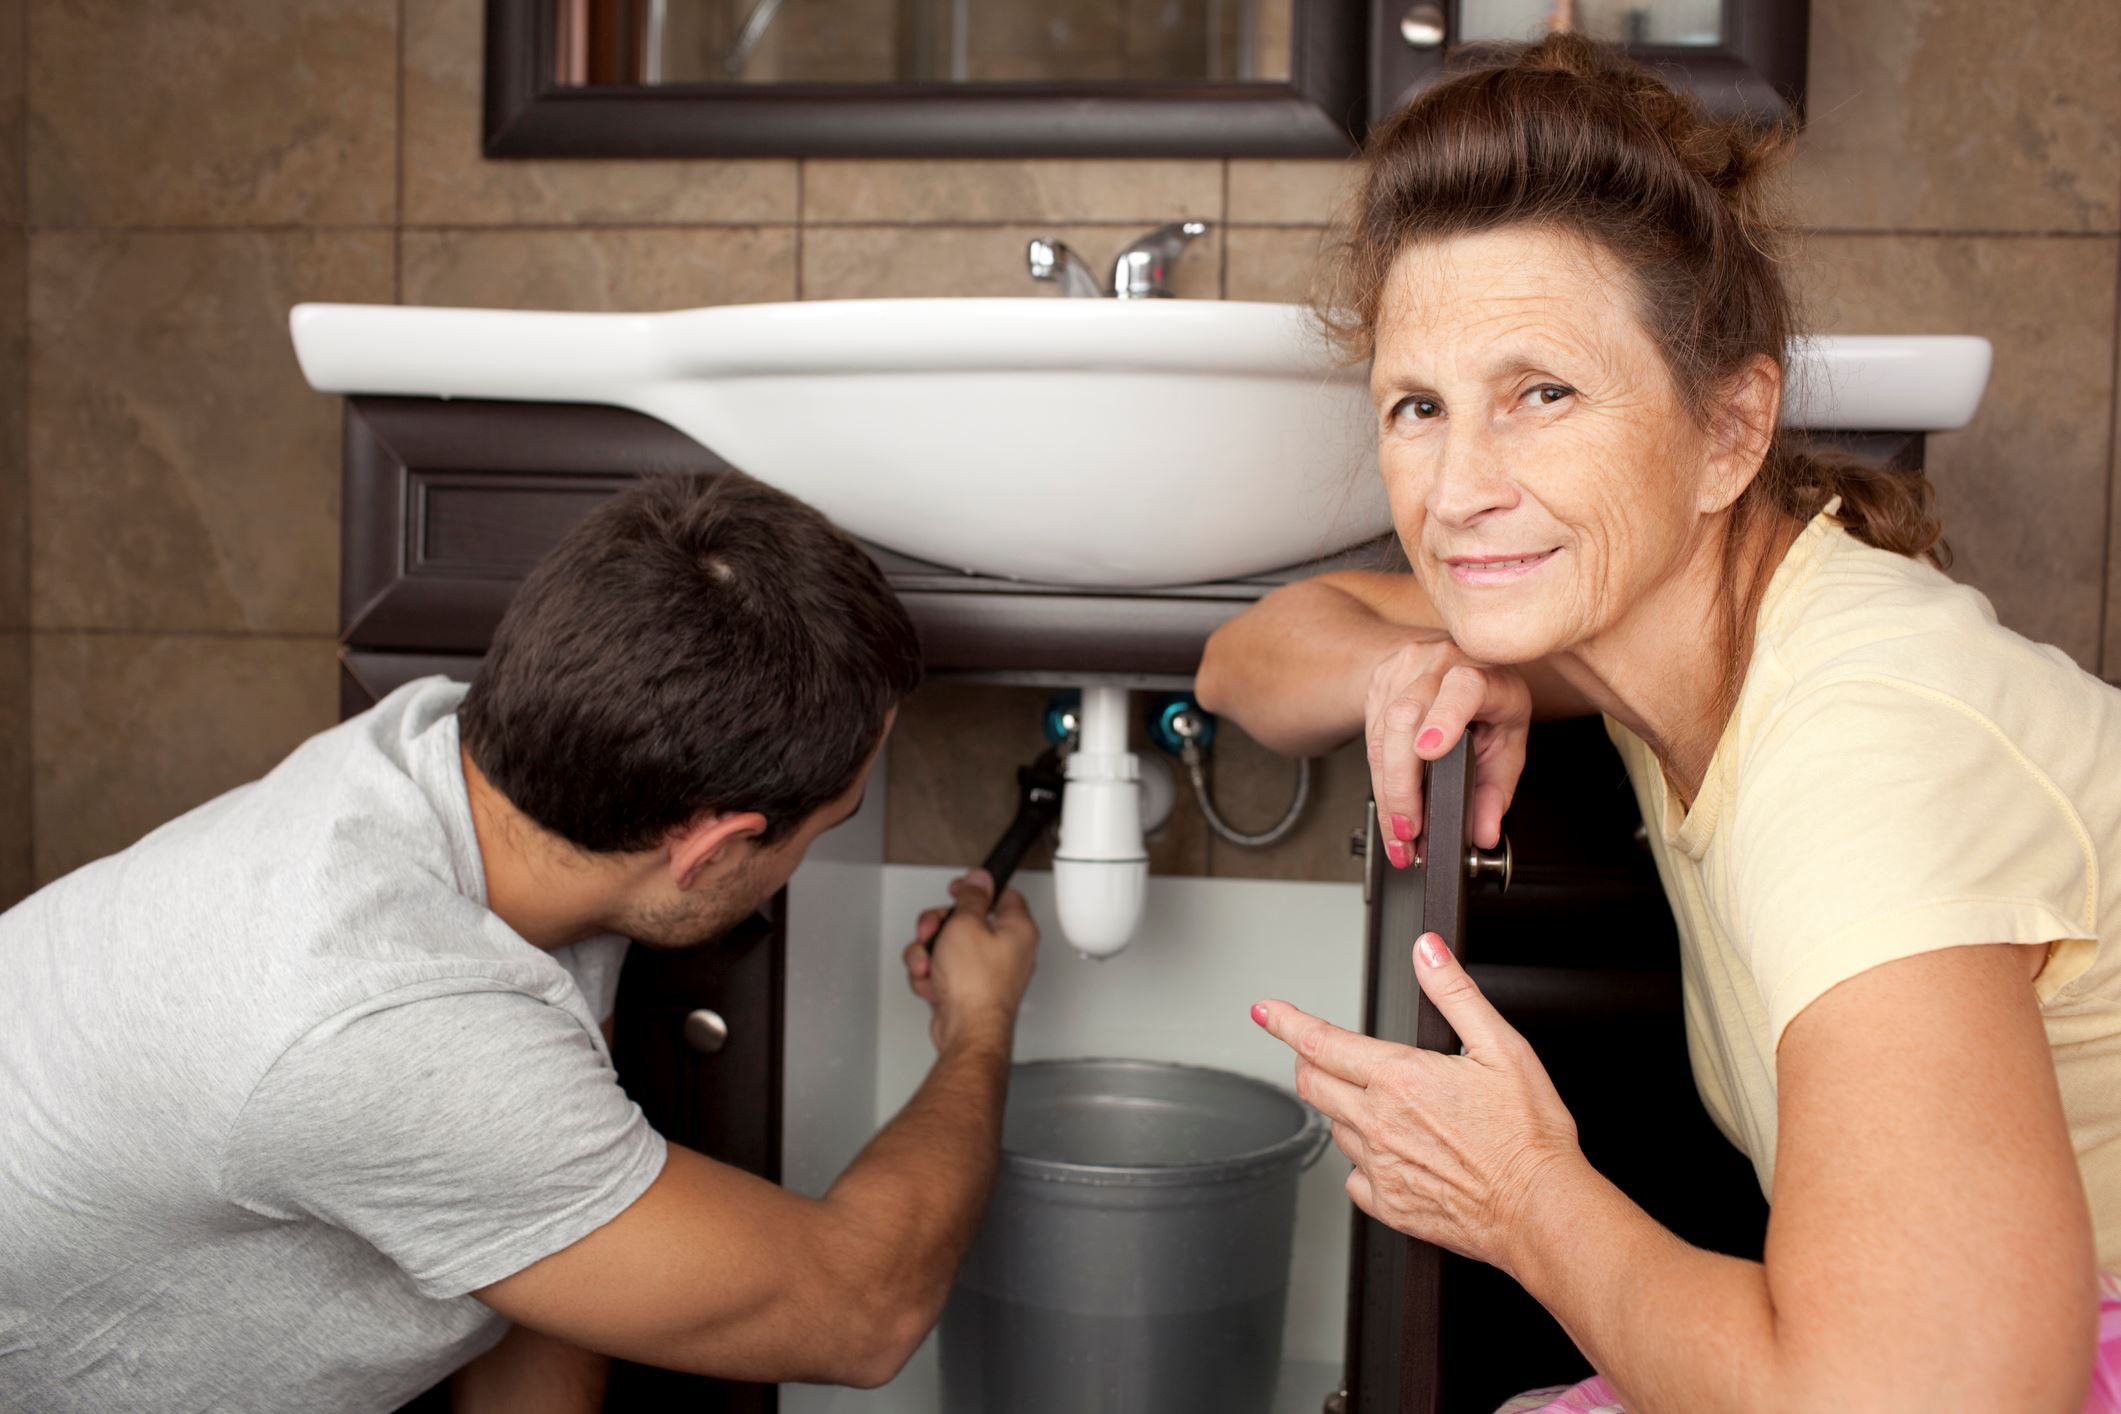 Lady watching plumber trying to fix leaky sink